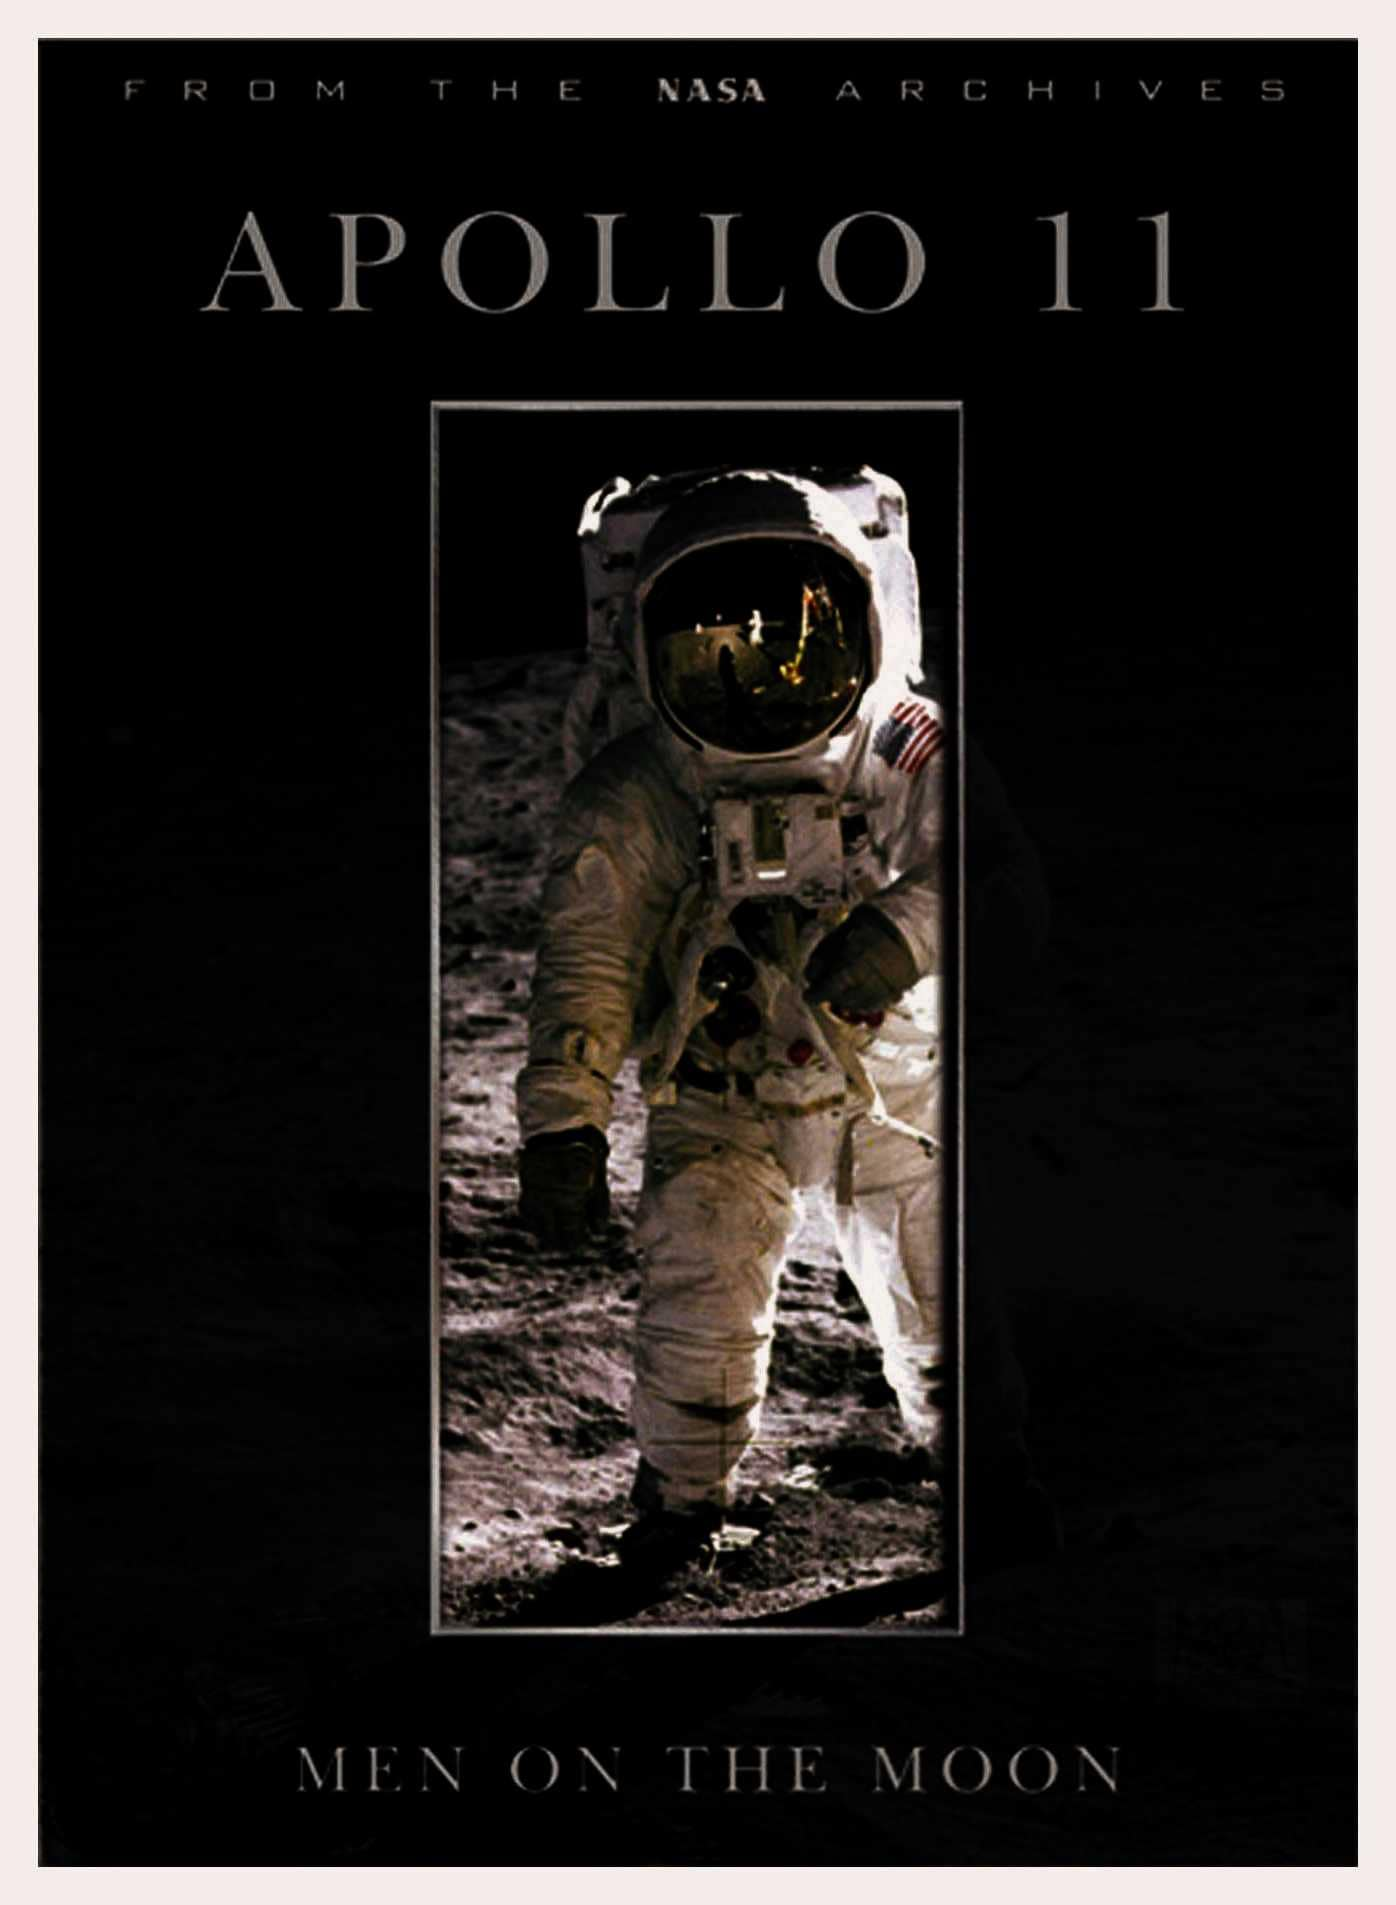 Spacecraft Films Apollo 11 Dvd images